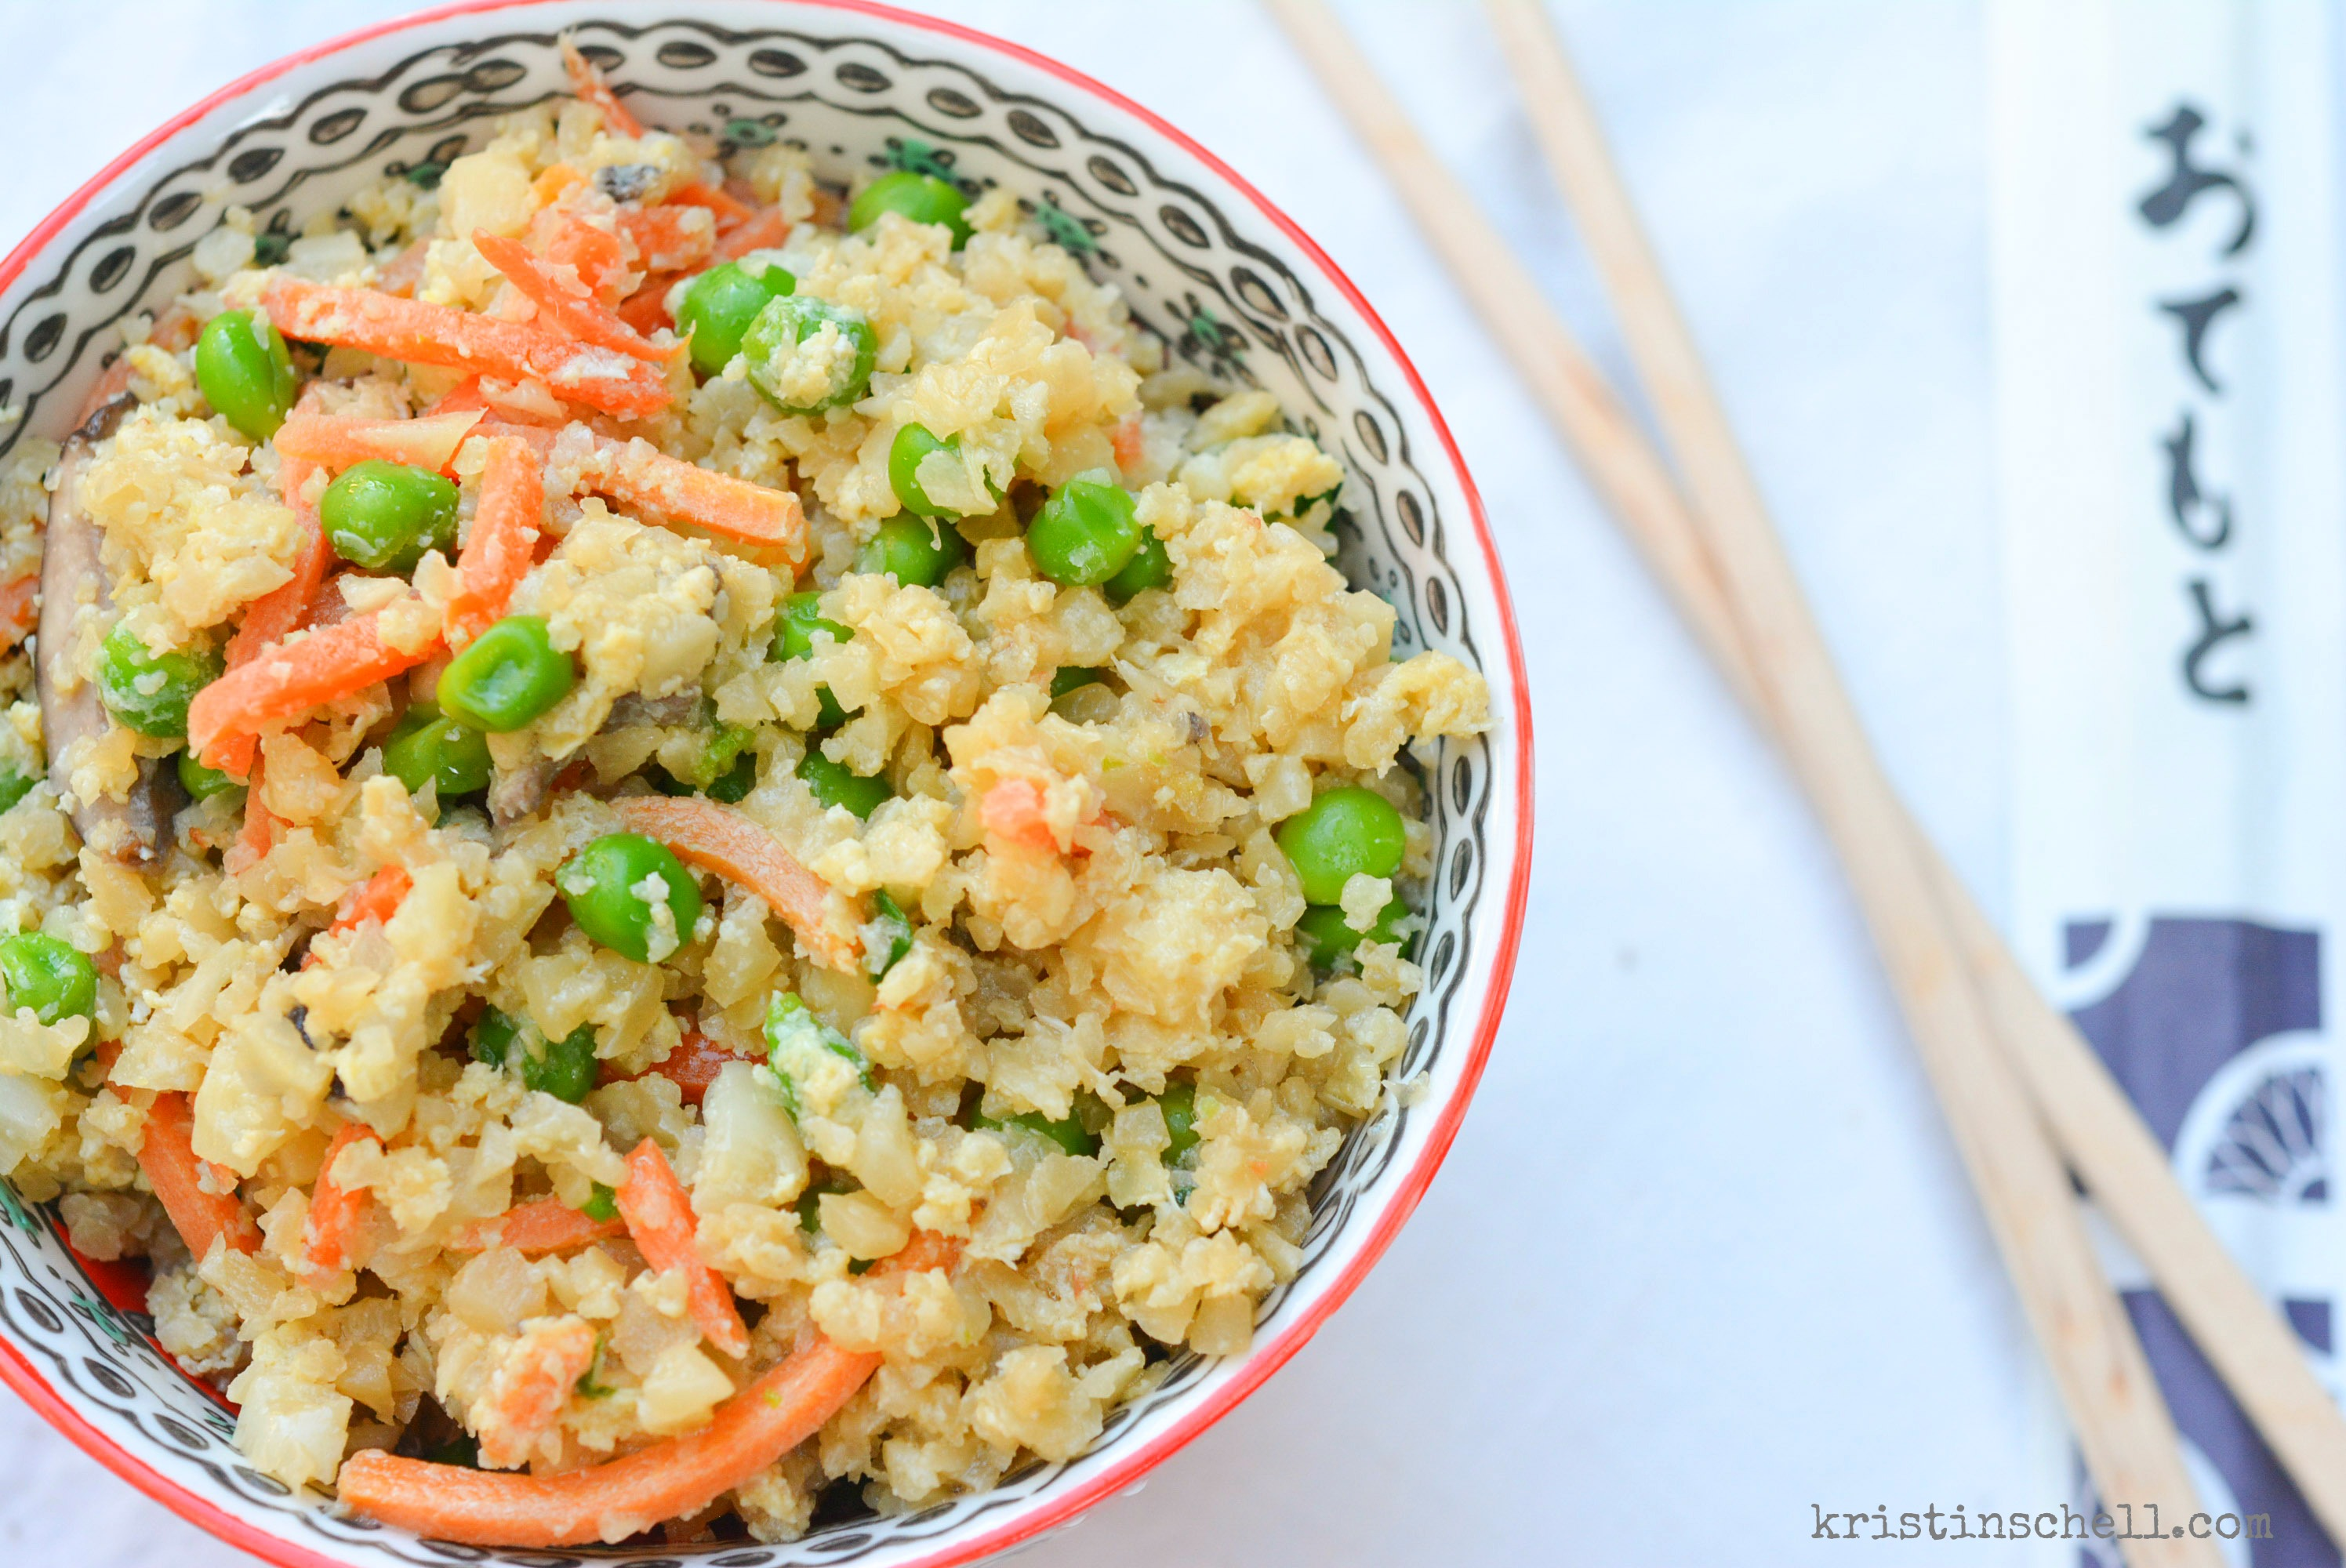 Stir Fry Cauliflower Rice The Turquoise Table